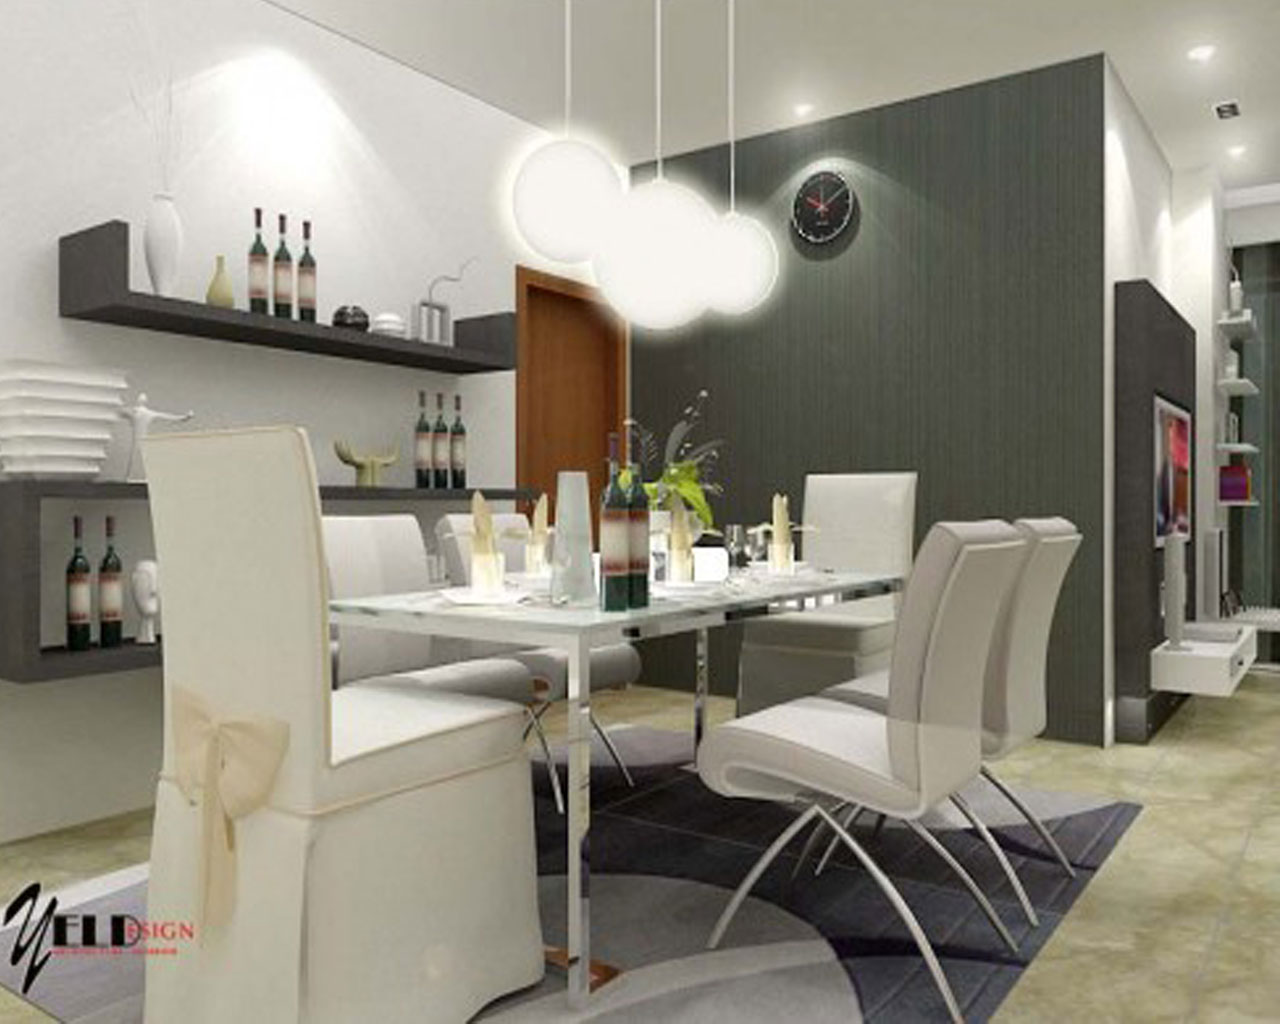 wallpaper for dining room ideas photo - 1